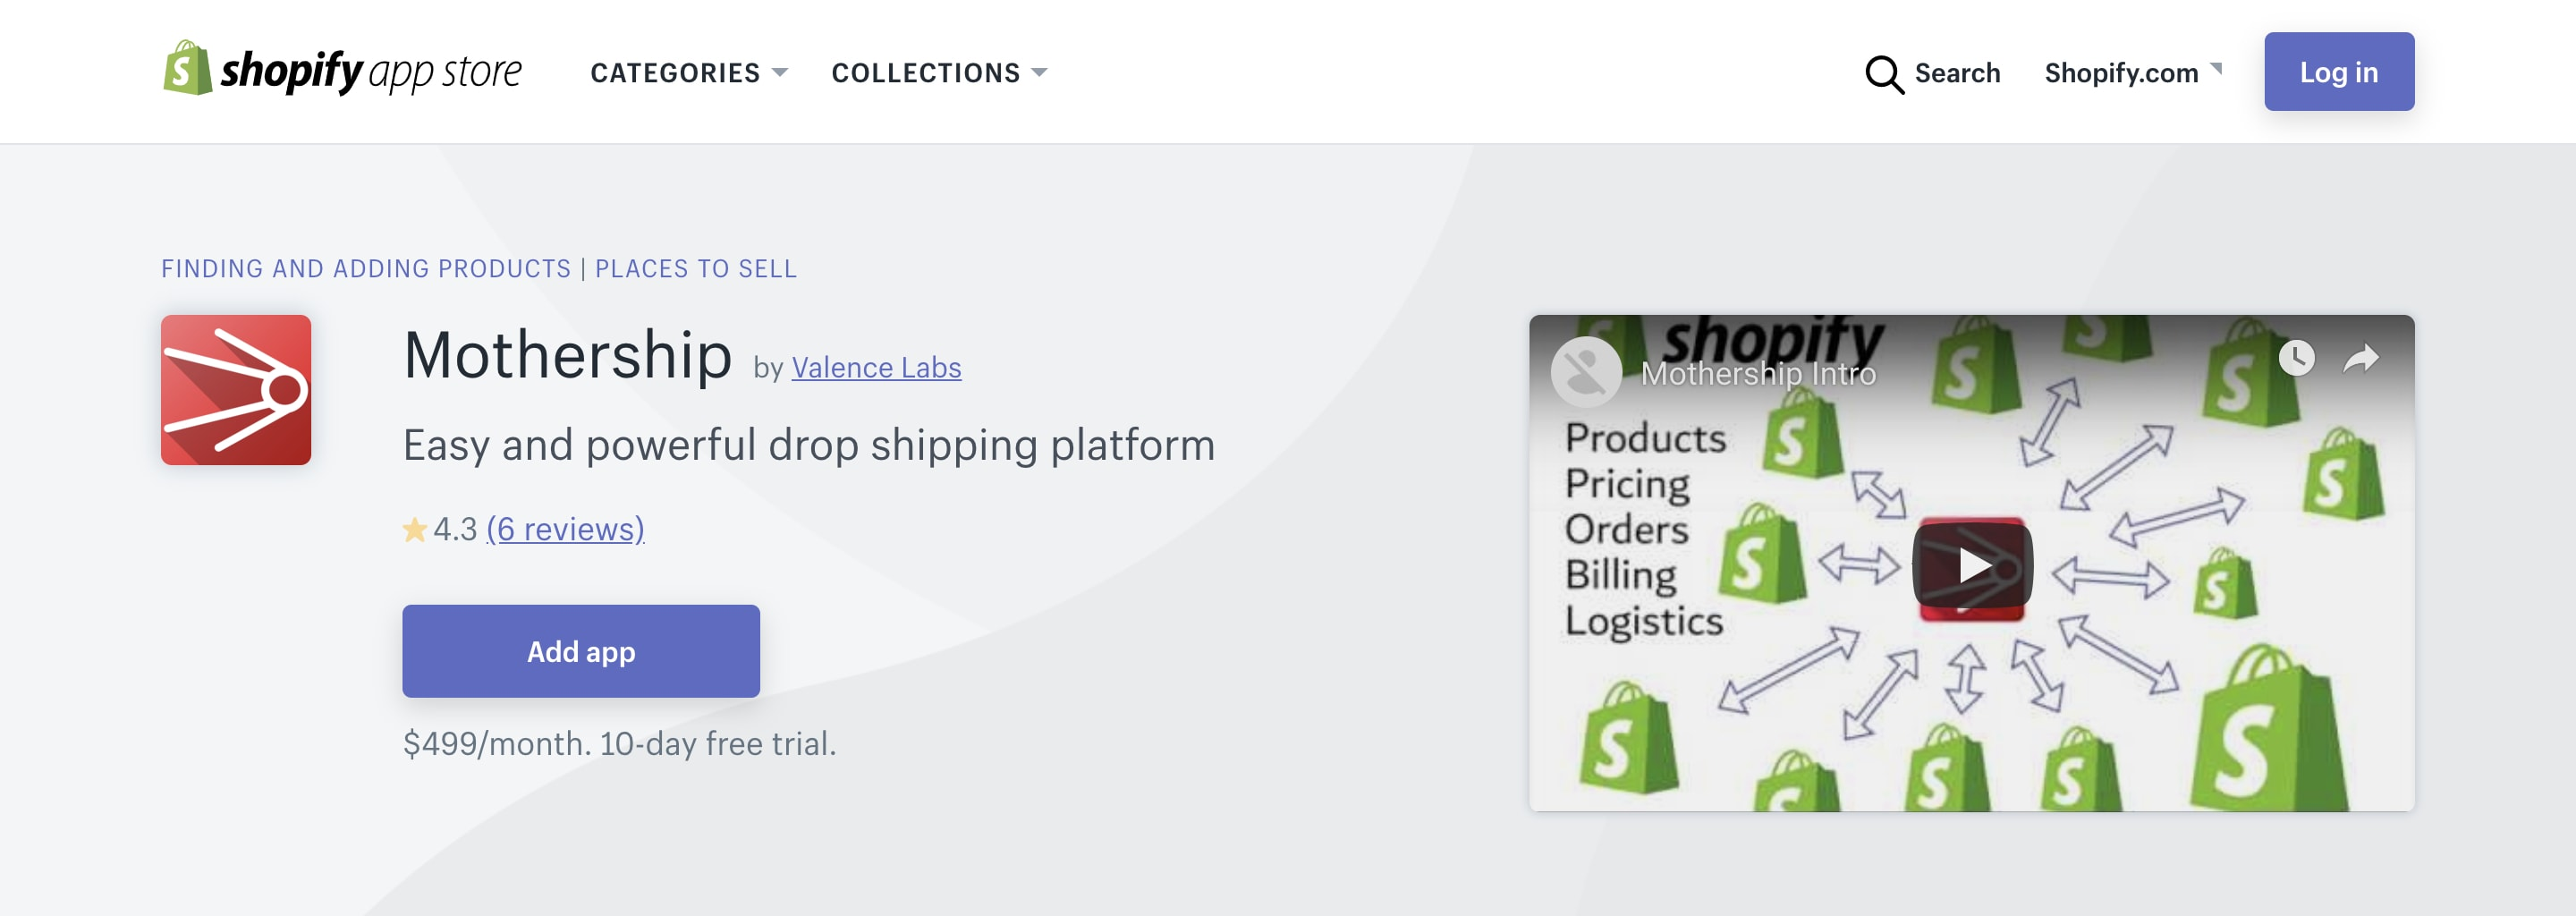 Shopify Mothership channel.